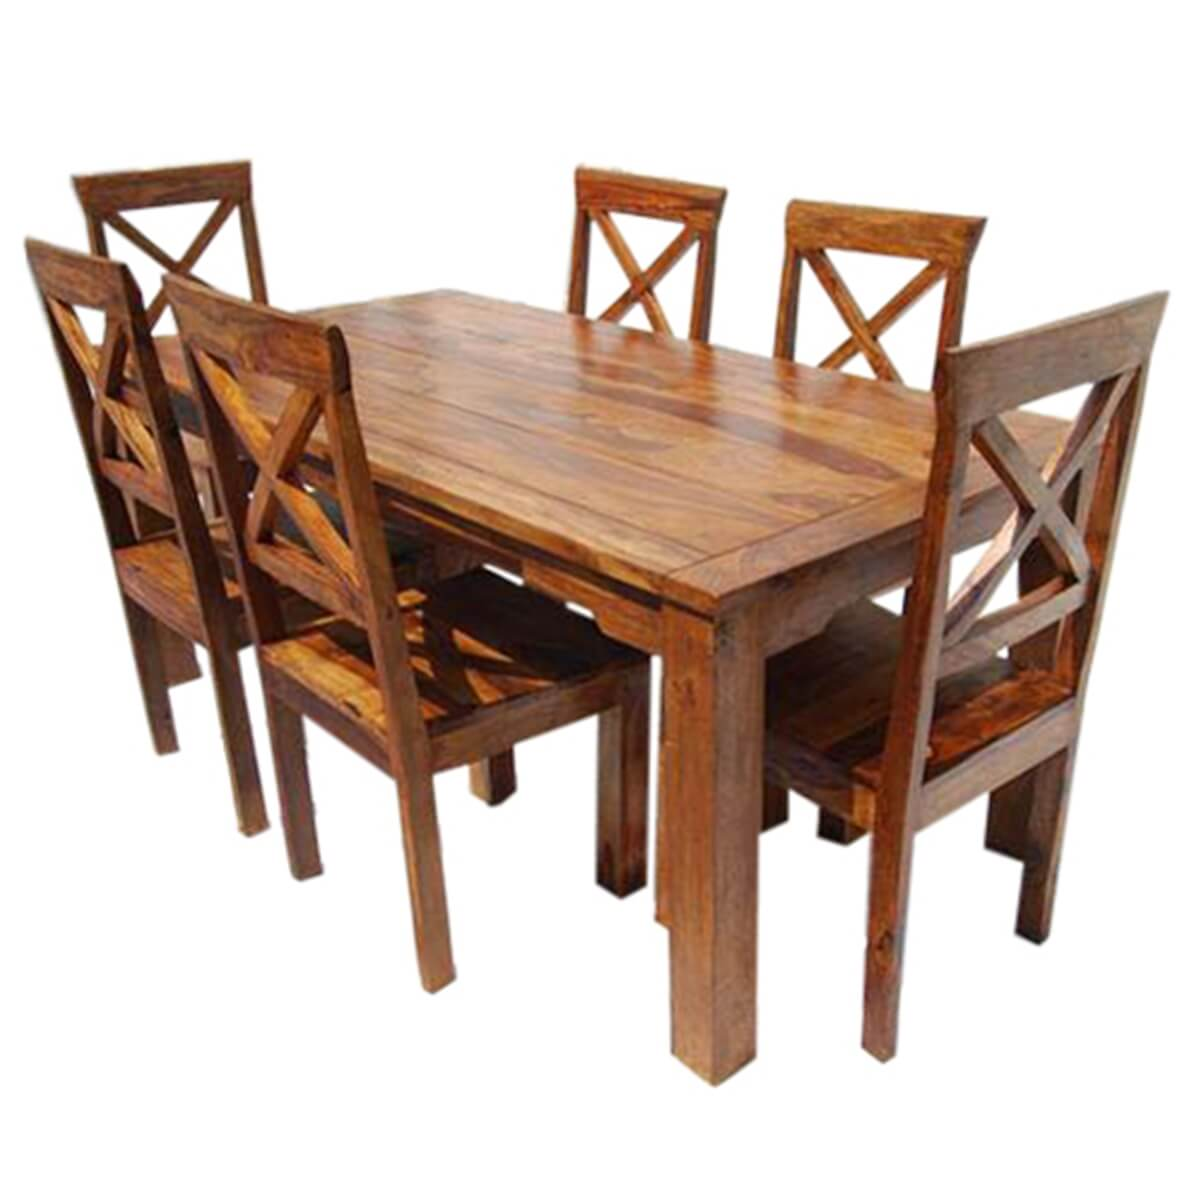 Rustic Solid Wood Oklahoma Dining Table amp Chair Set : 13515 from sierralivingconcepts.com size 1200 x 1200 jpeg 347kB